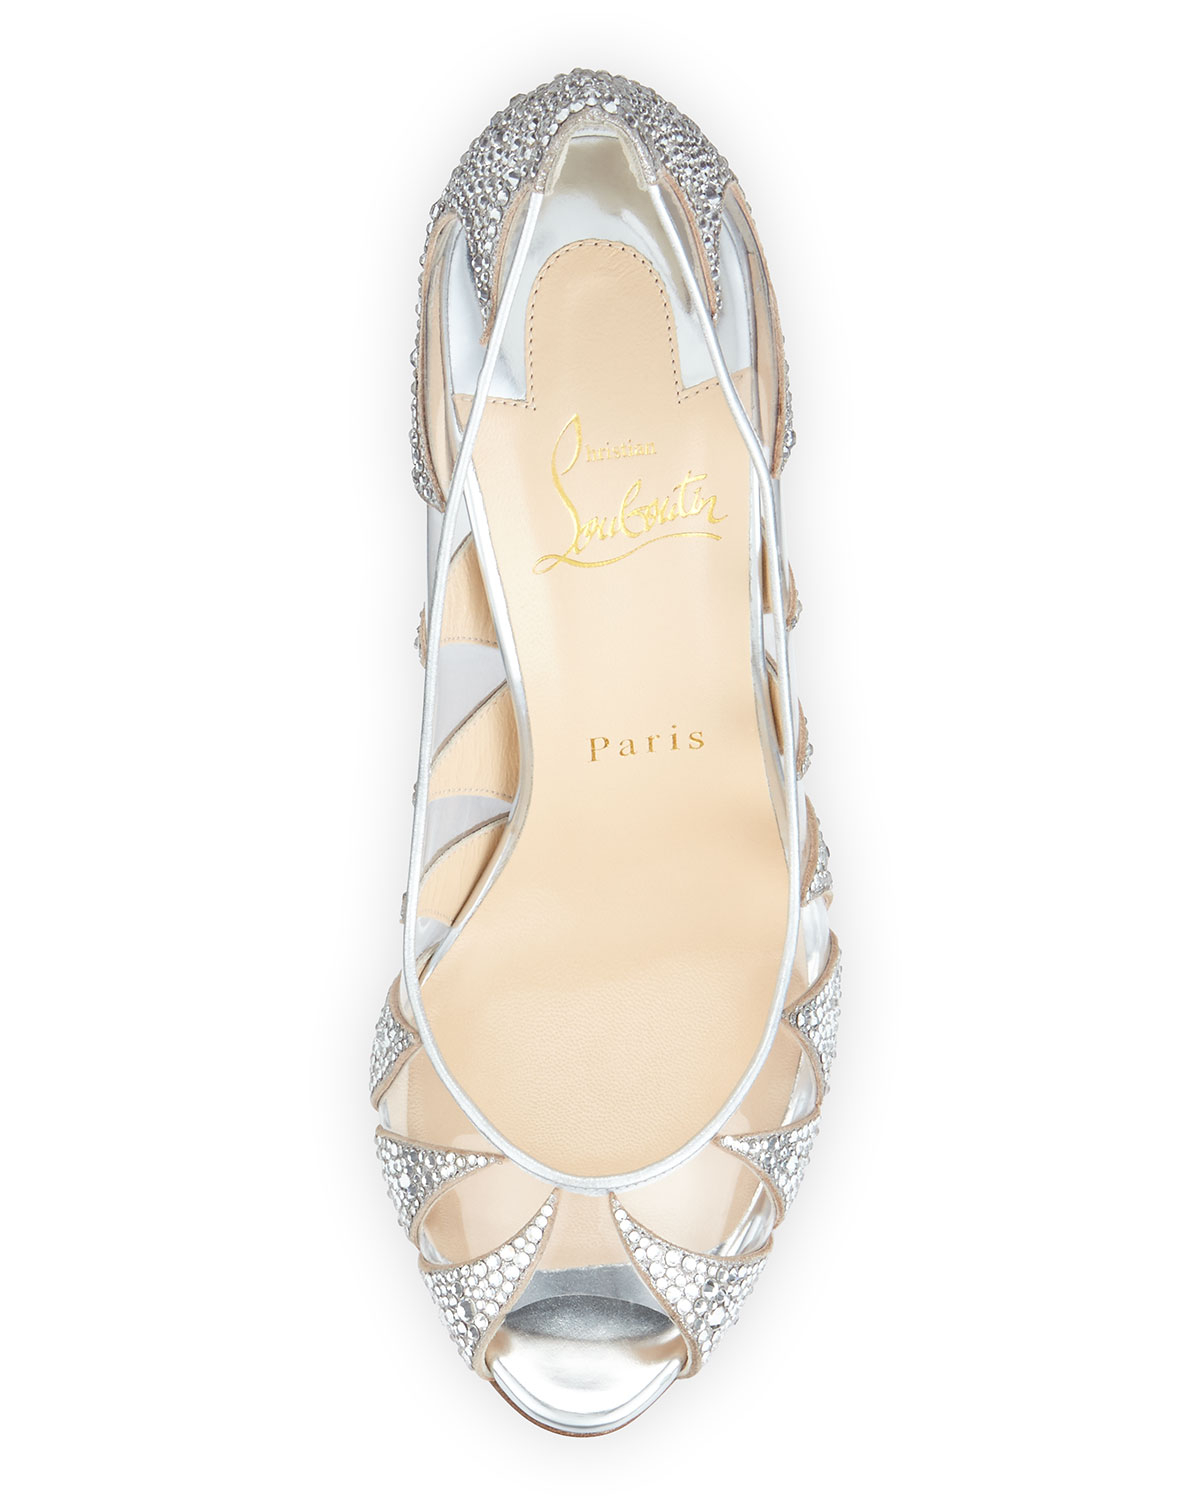 imitation louis vuitton shoes - Christian louboutin Indera Crystal-Embellished Pumps in Silver | Lyst